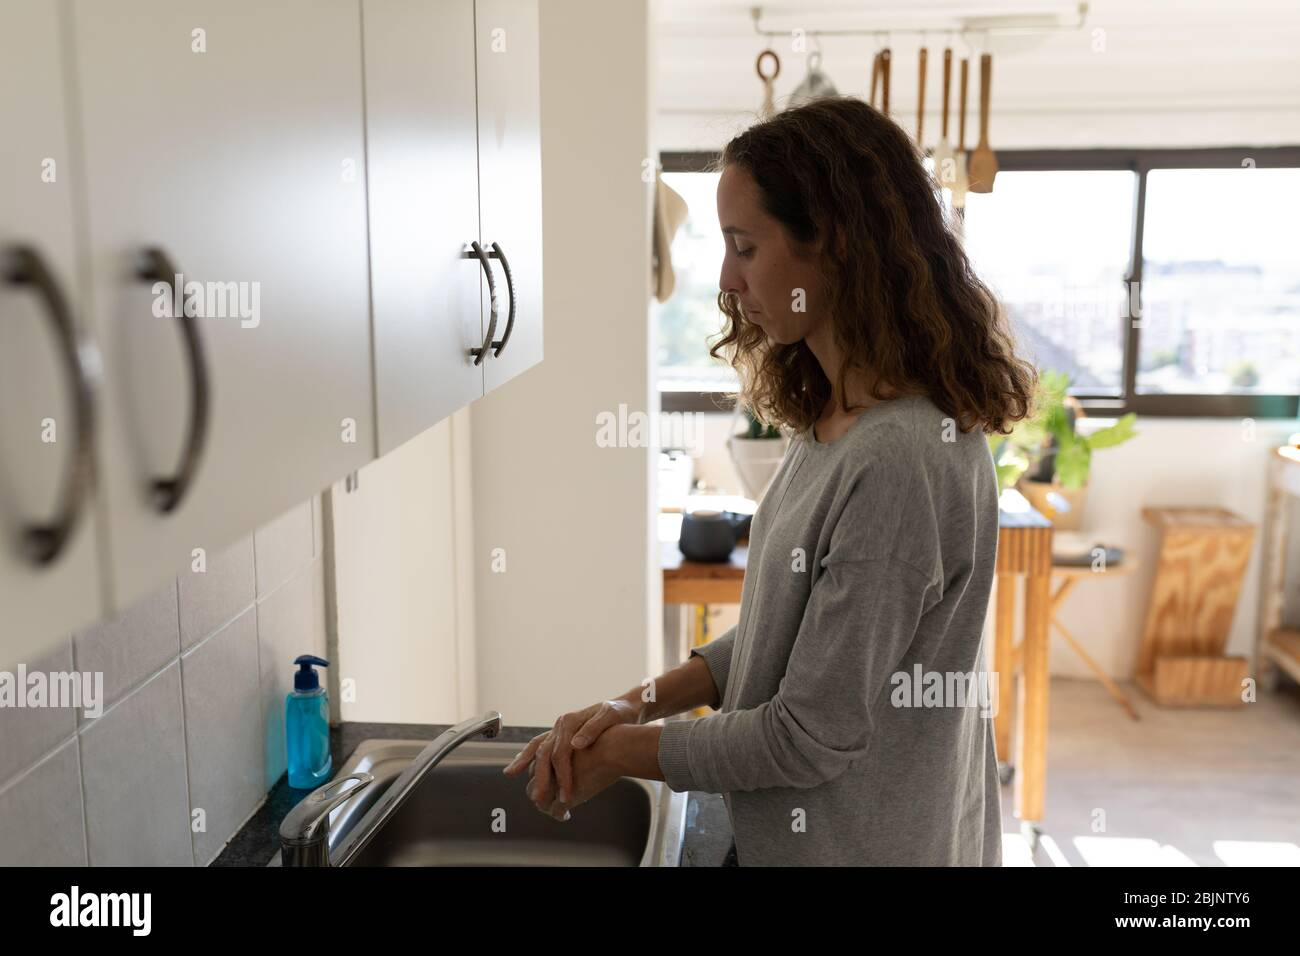 Caucasian woman spending time at home self isolating and social distancing in quarantine lockdown du Stock Photo